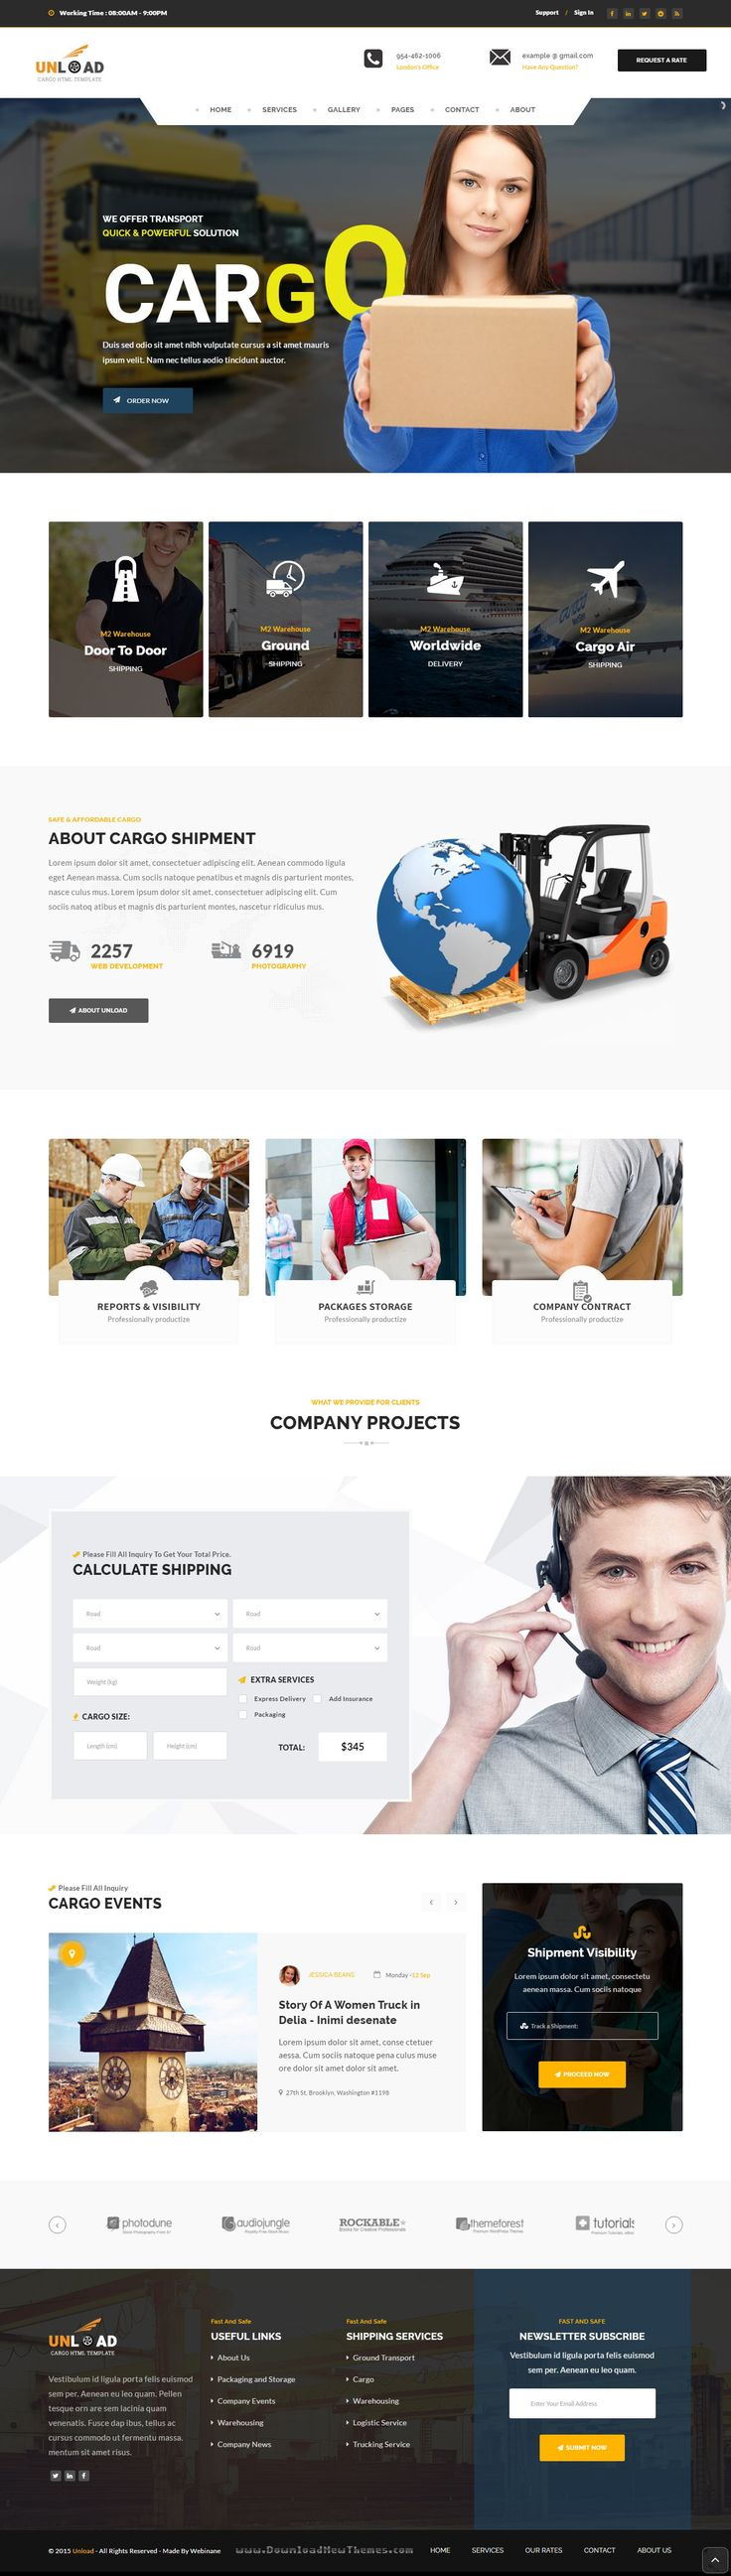 Unload - Cargo, Shipping, Warehouse & Transport HTML5 Responsive Website Template #webdesign #logistics #HTML